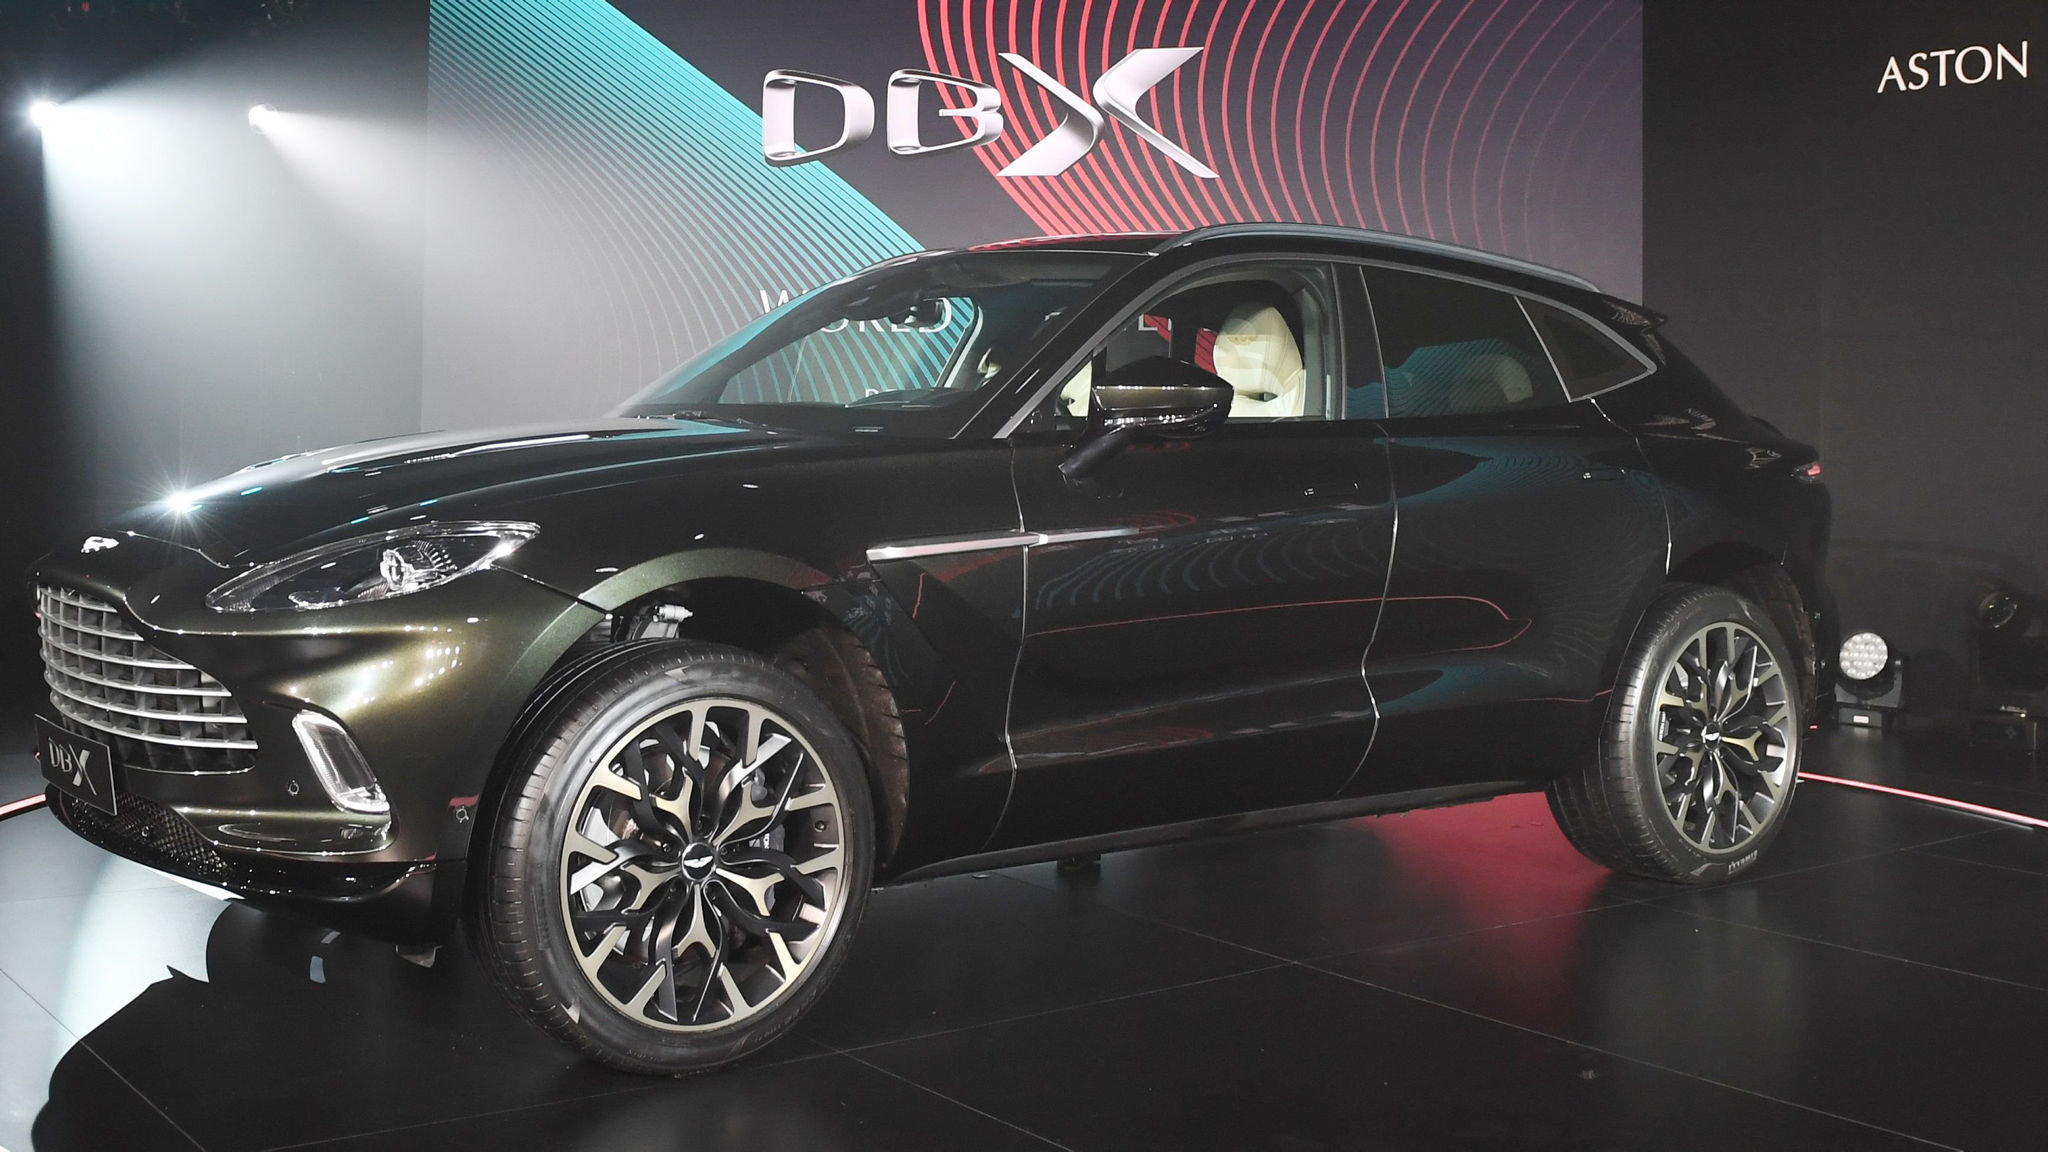 Aston Martin Enters Suv Market With Dbx Financial Times